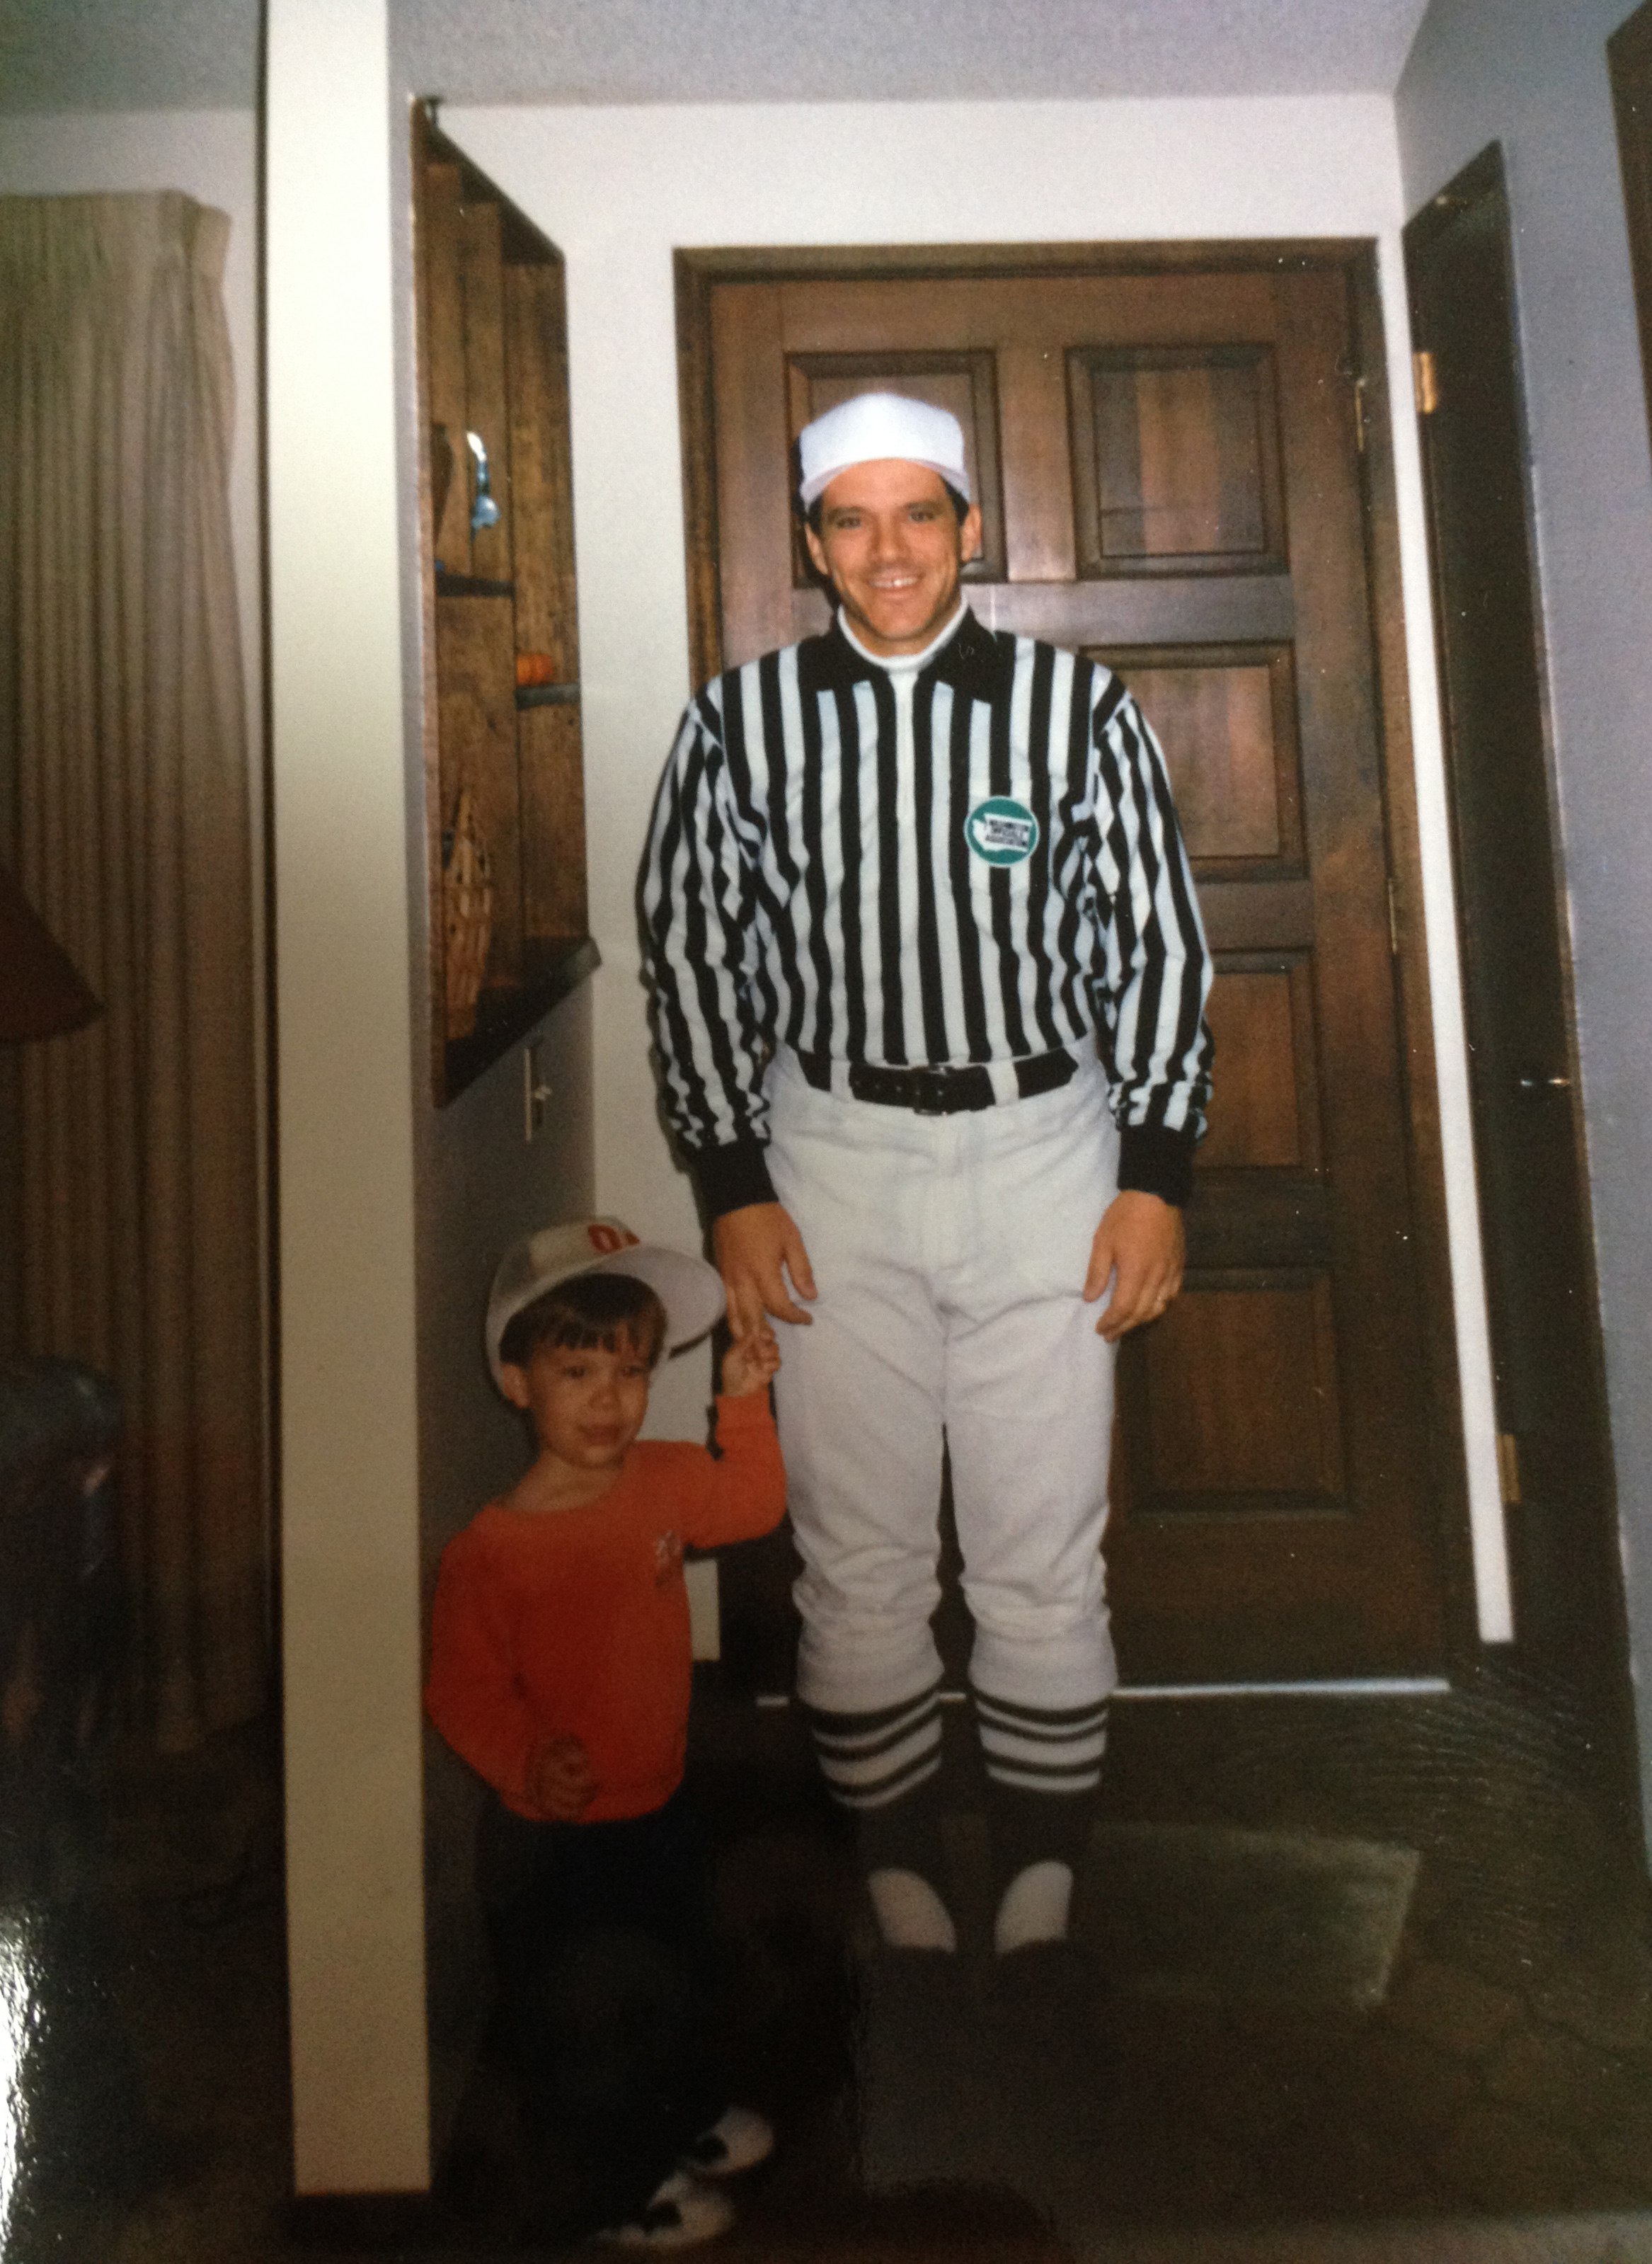 From the time I was very little I admired my dad and wanted to be a referee like him.